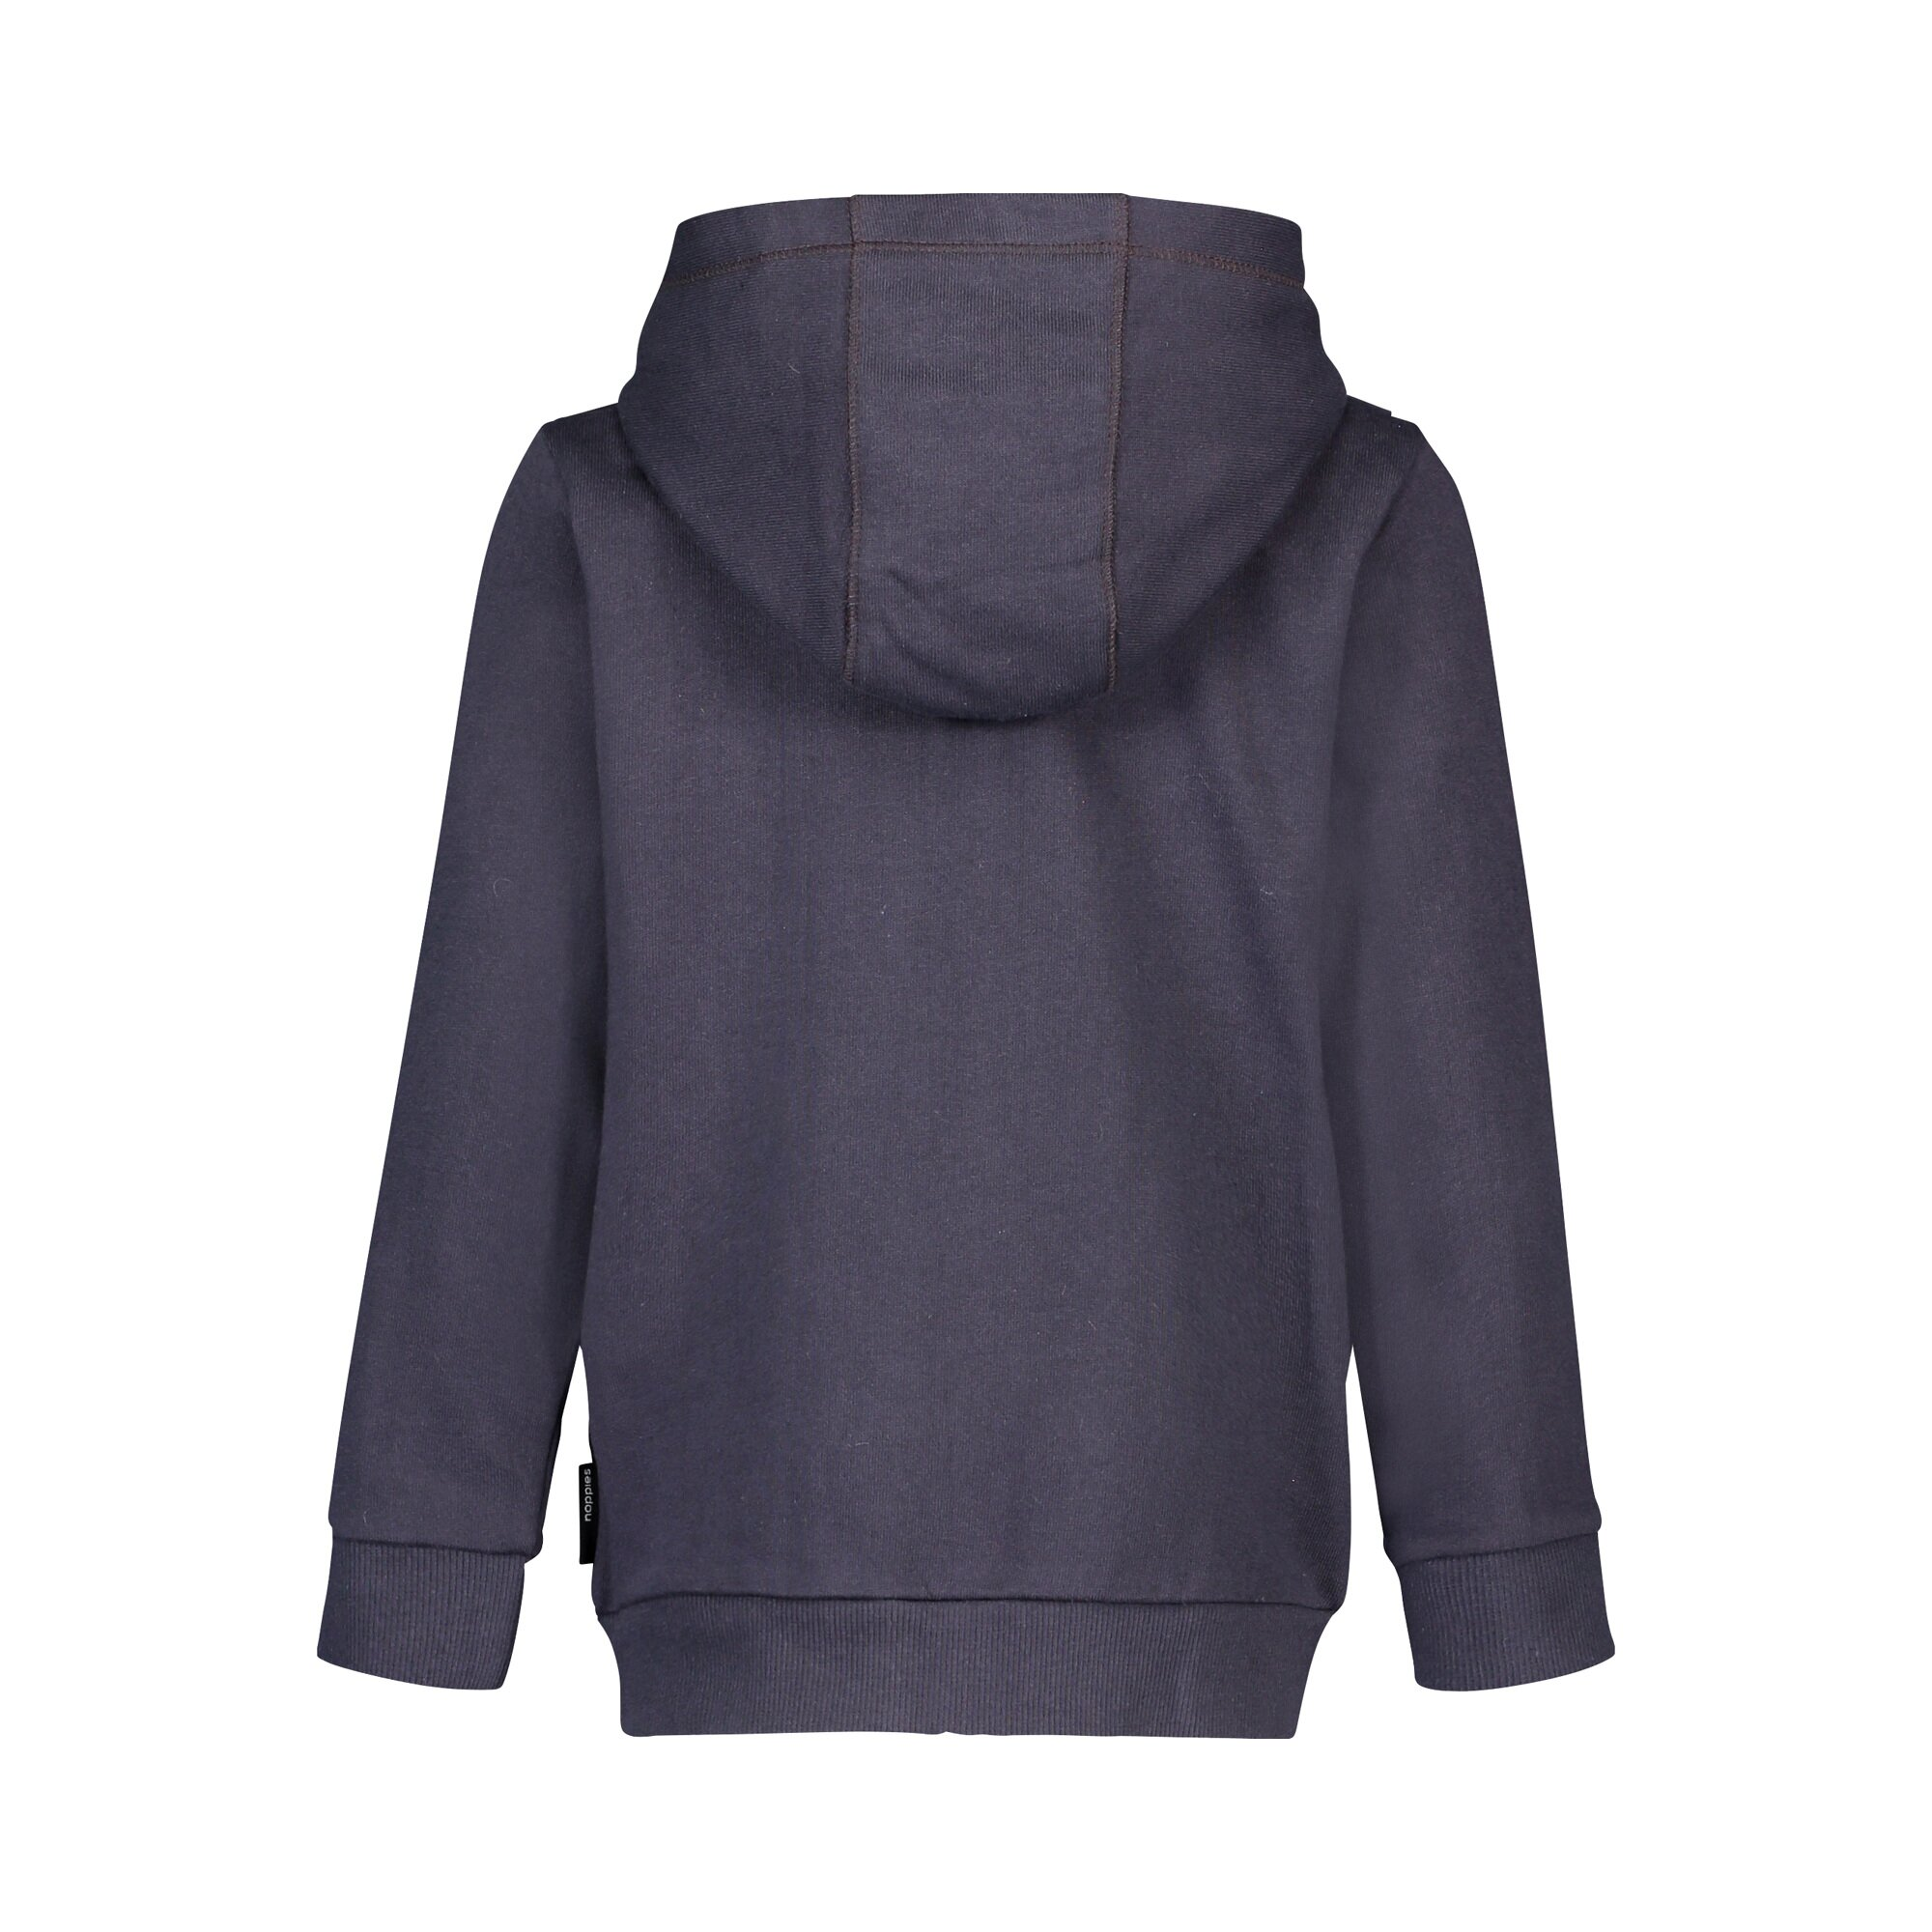 noppies-sweatjacke-mit-kapuze